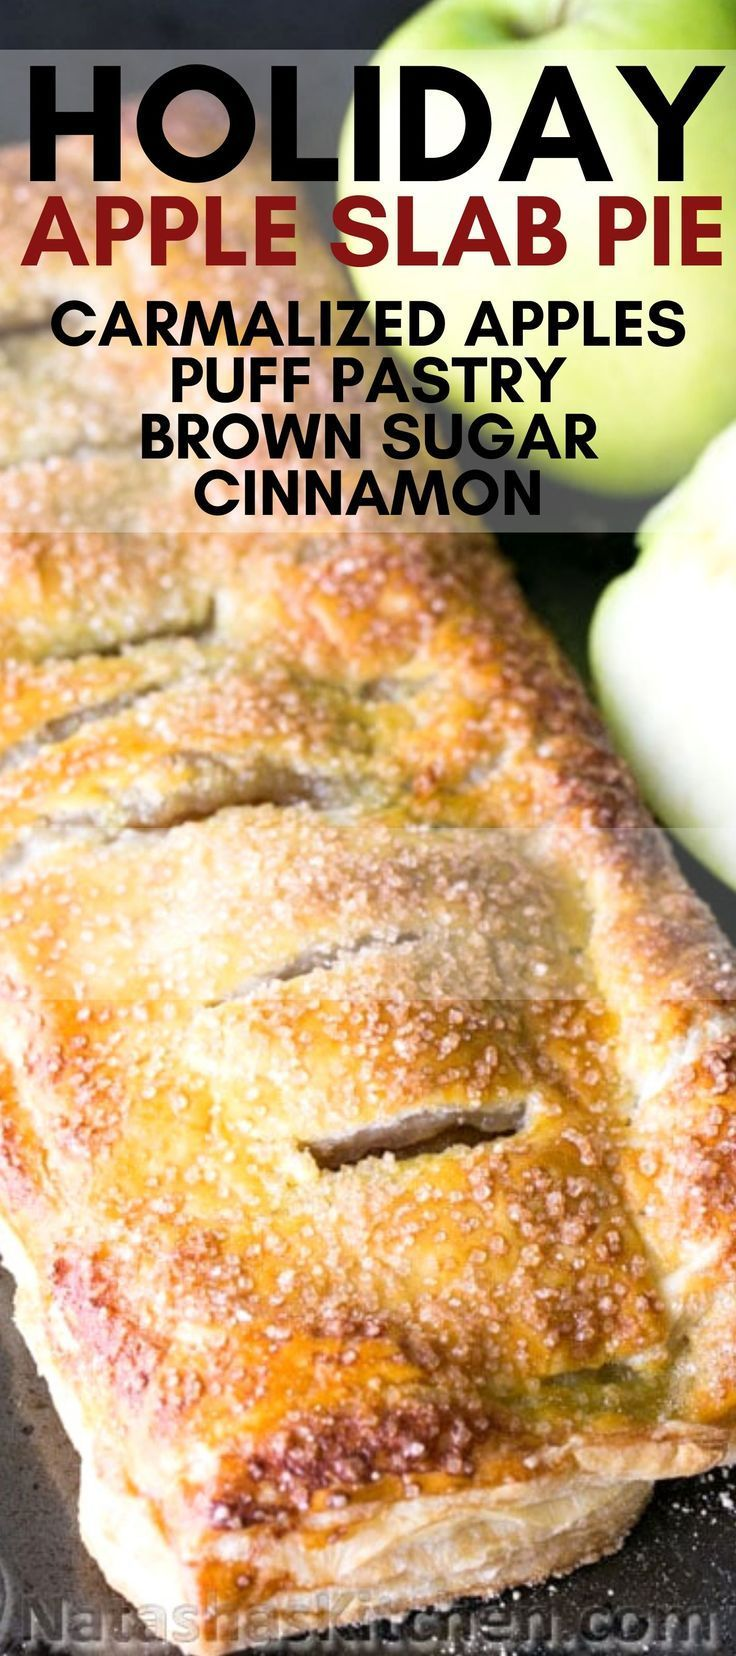 Apple Cinnamon Slab Pie Recipe